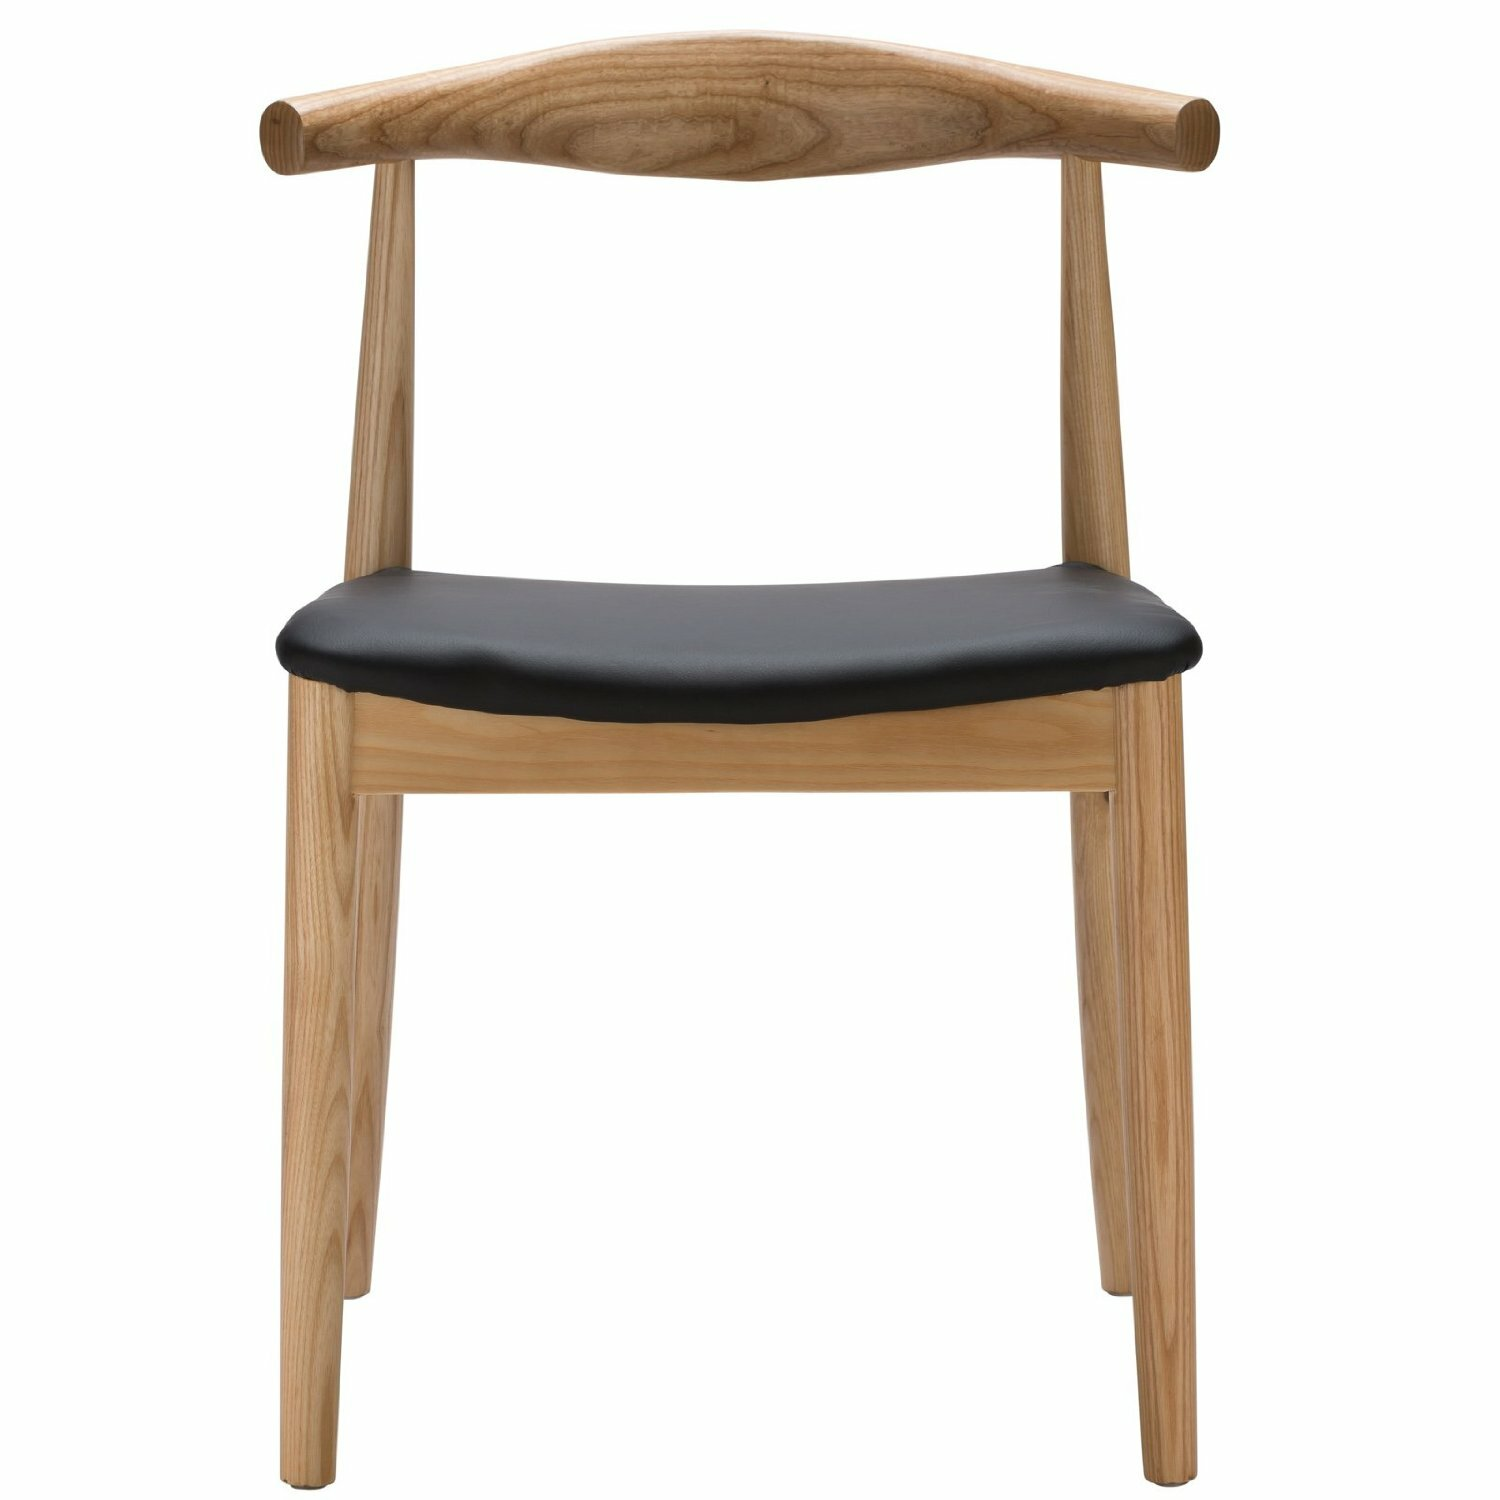 Awe Inspiring Hythe Beech Wood Dining Chair Pabps2019 Chair Design Images Pabps2019Com